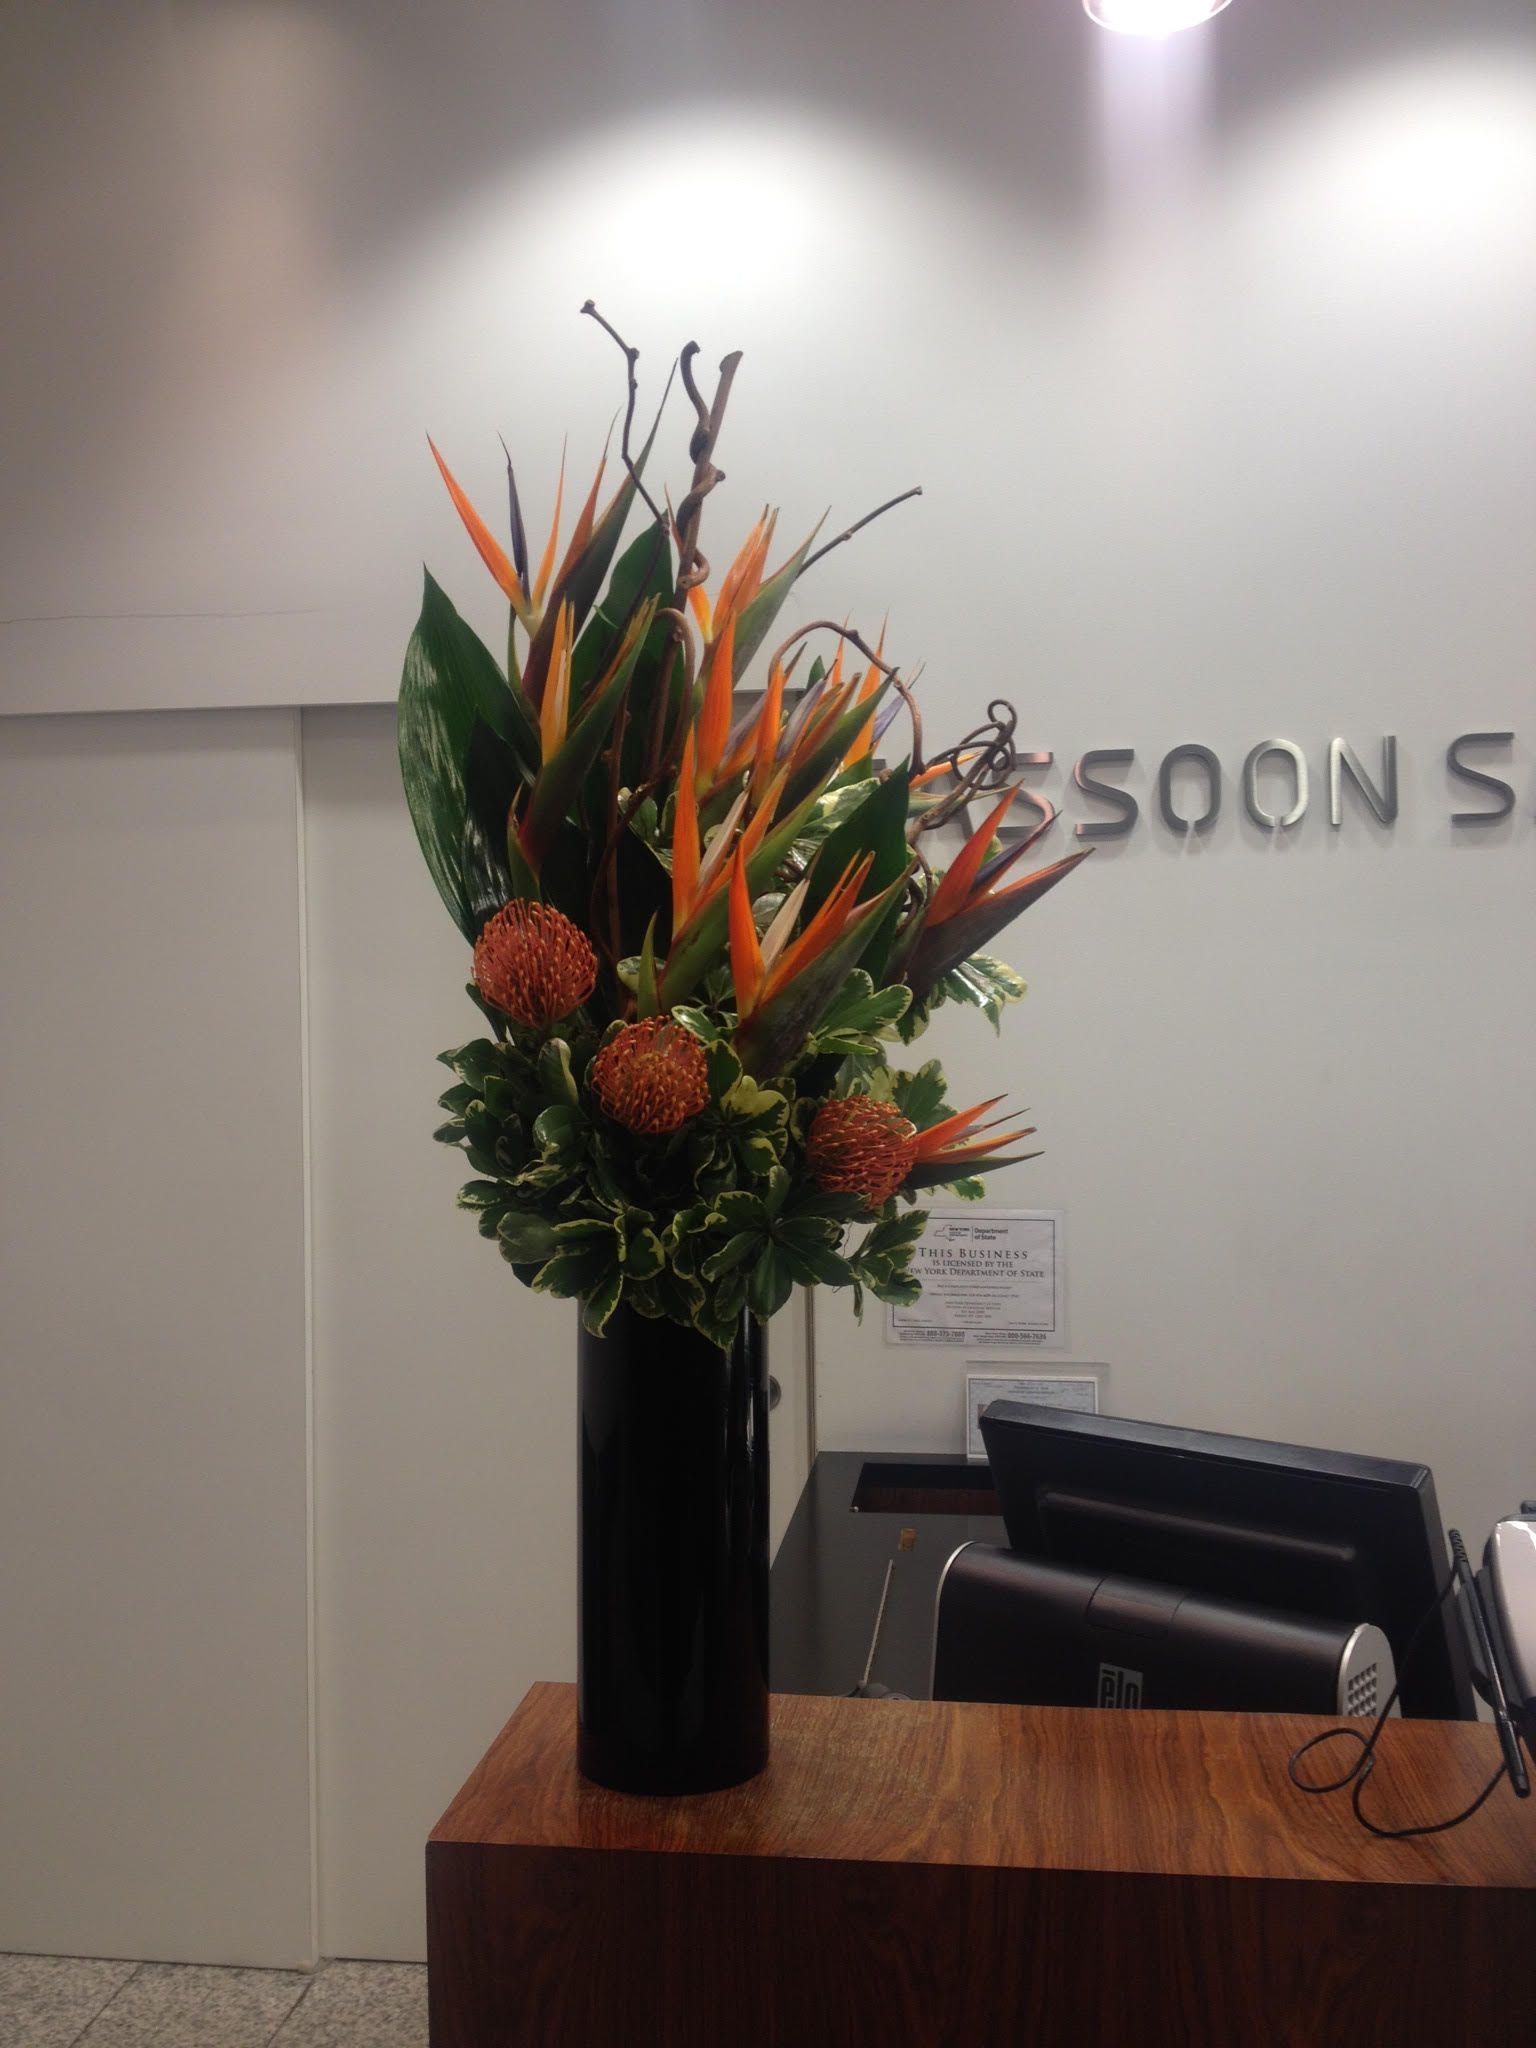 Each Week Our Designers Produce New Color Display With Carefully Arranged Fresh Flowers To